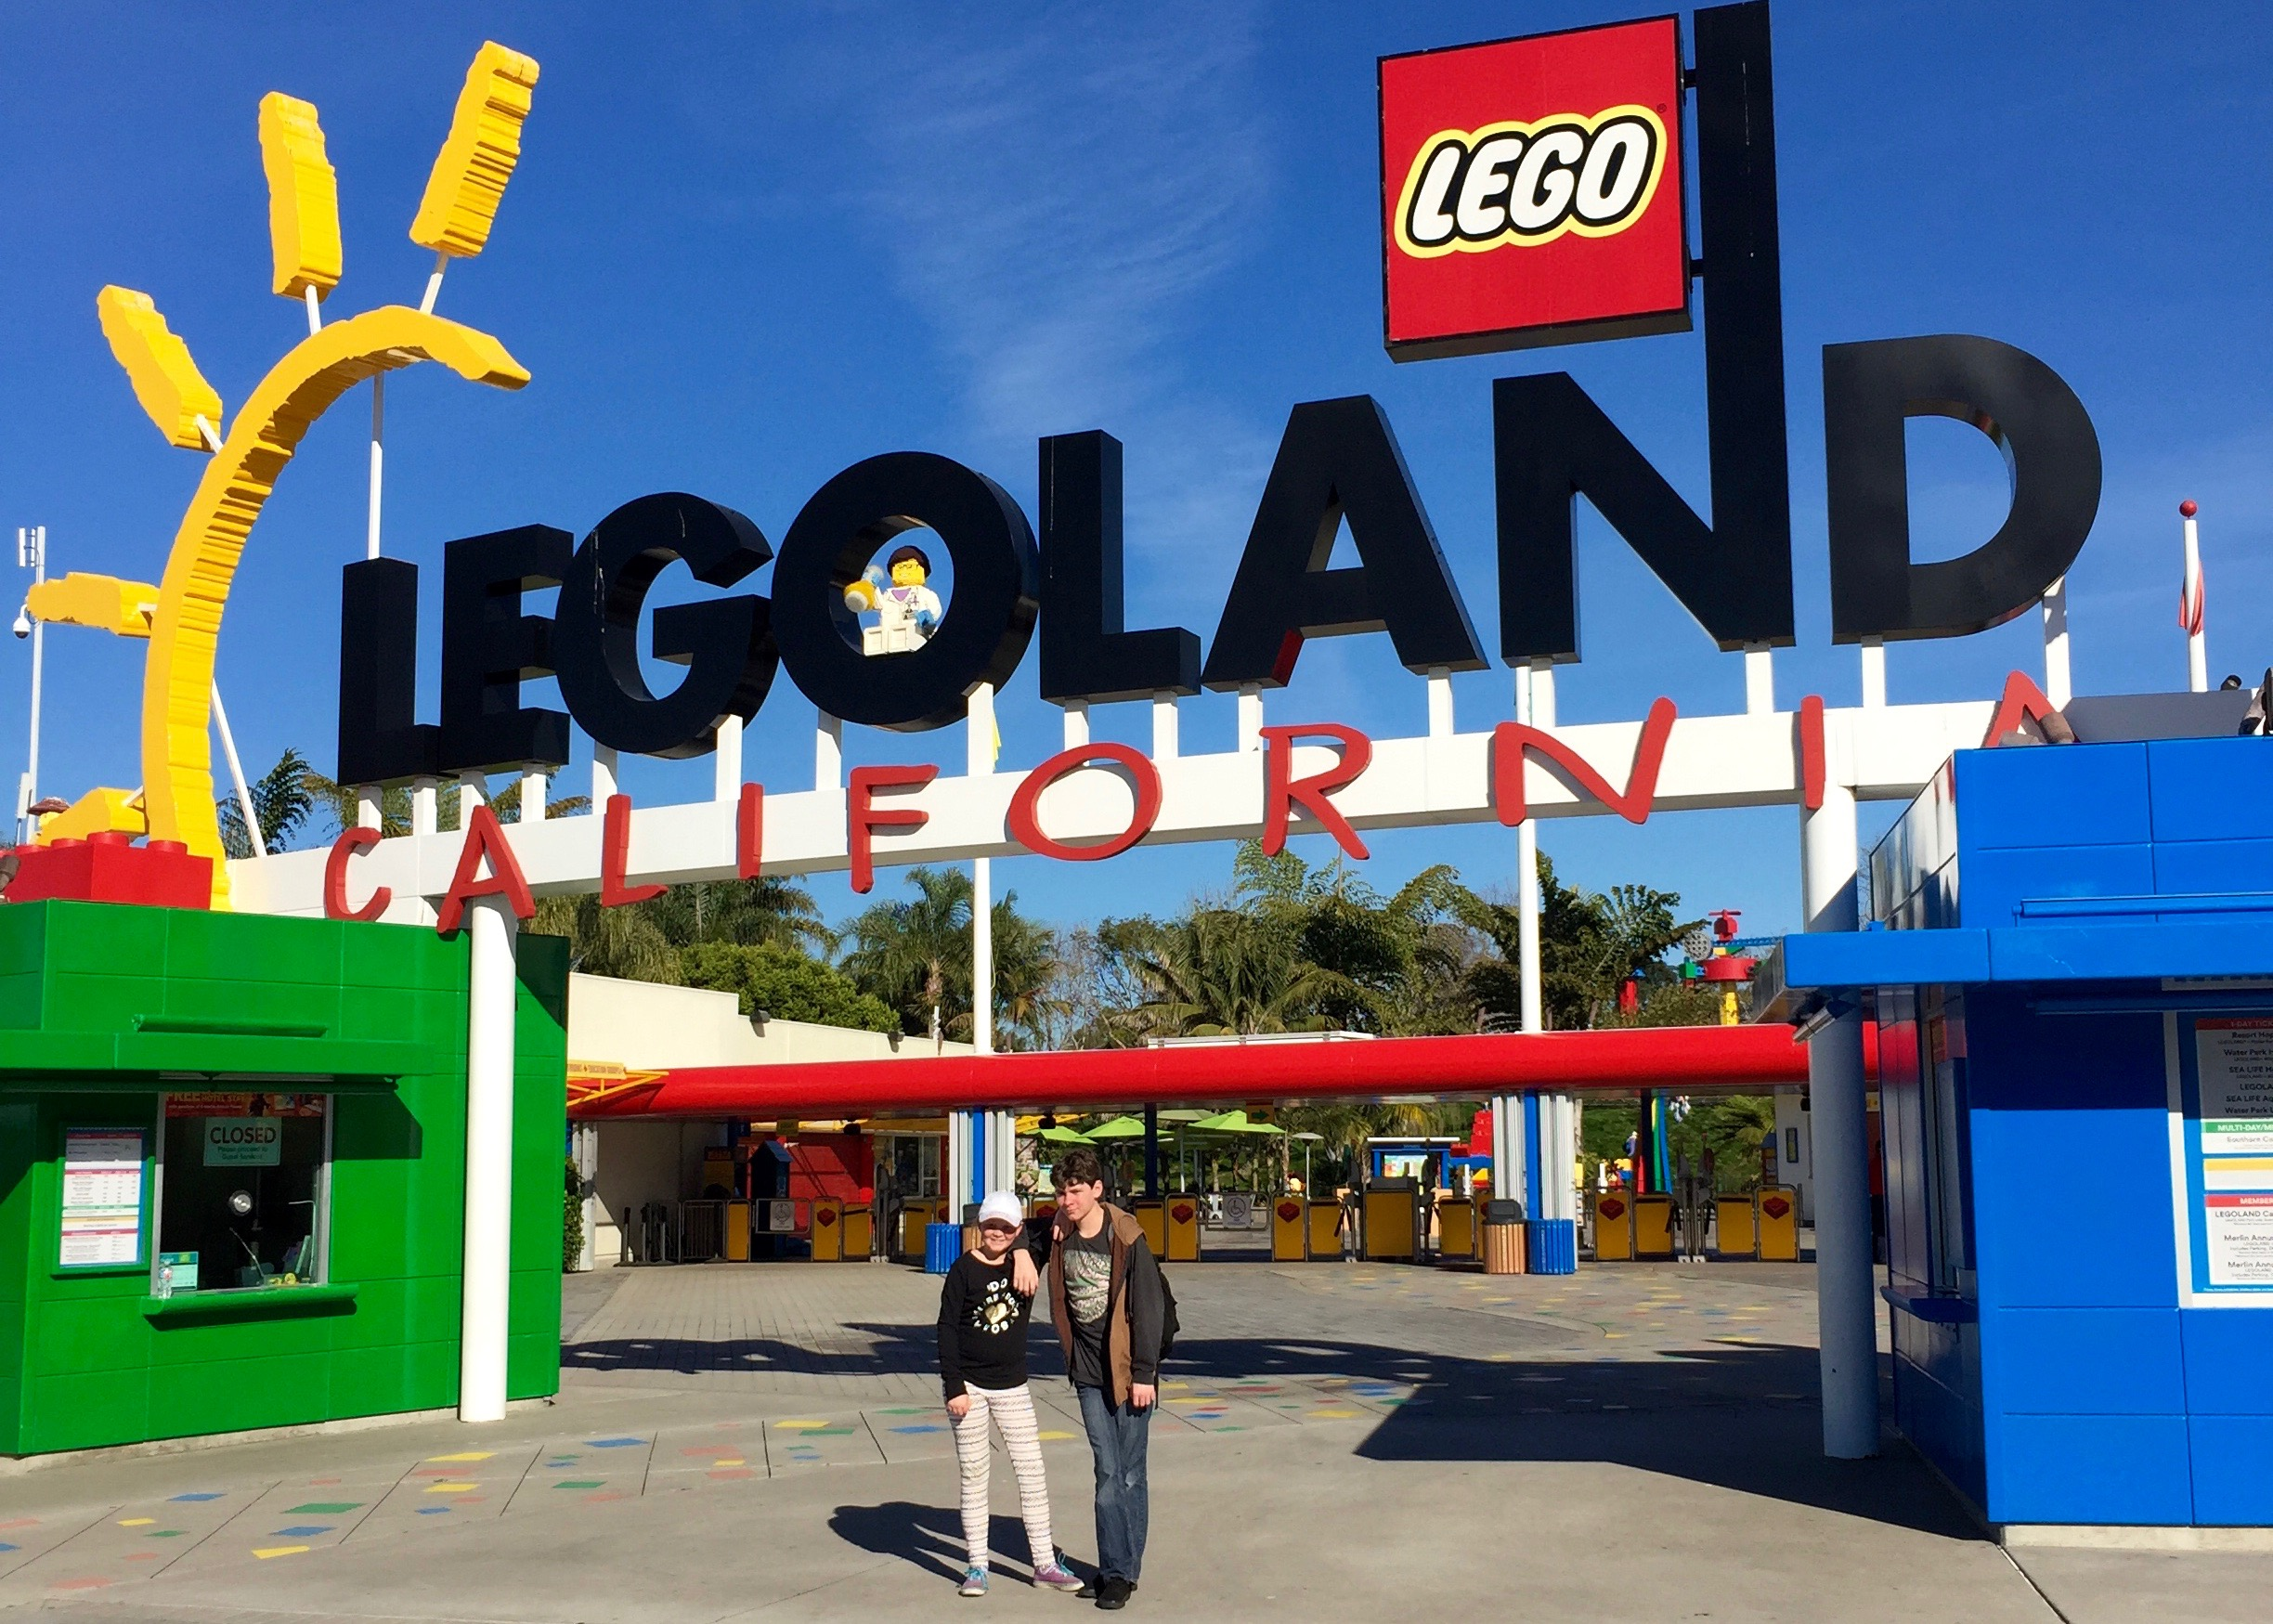 LEGOLAND California – Star Wars The Force Awakens